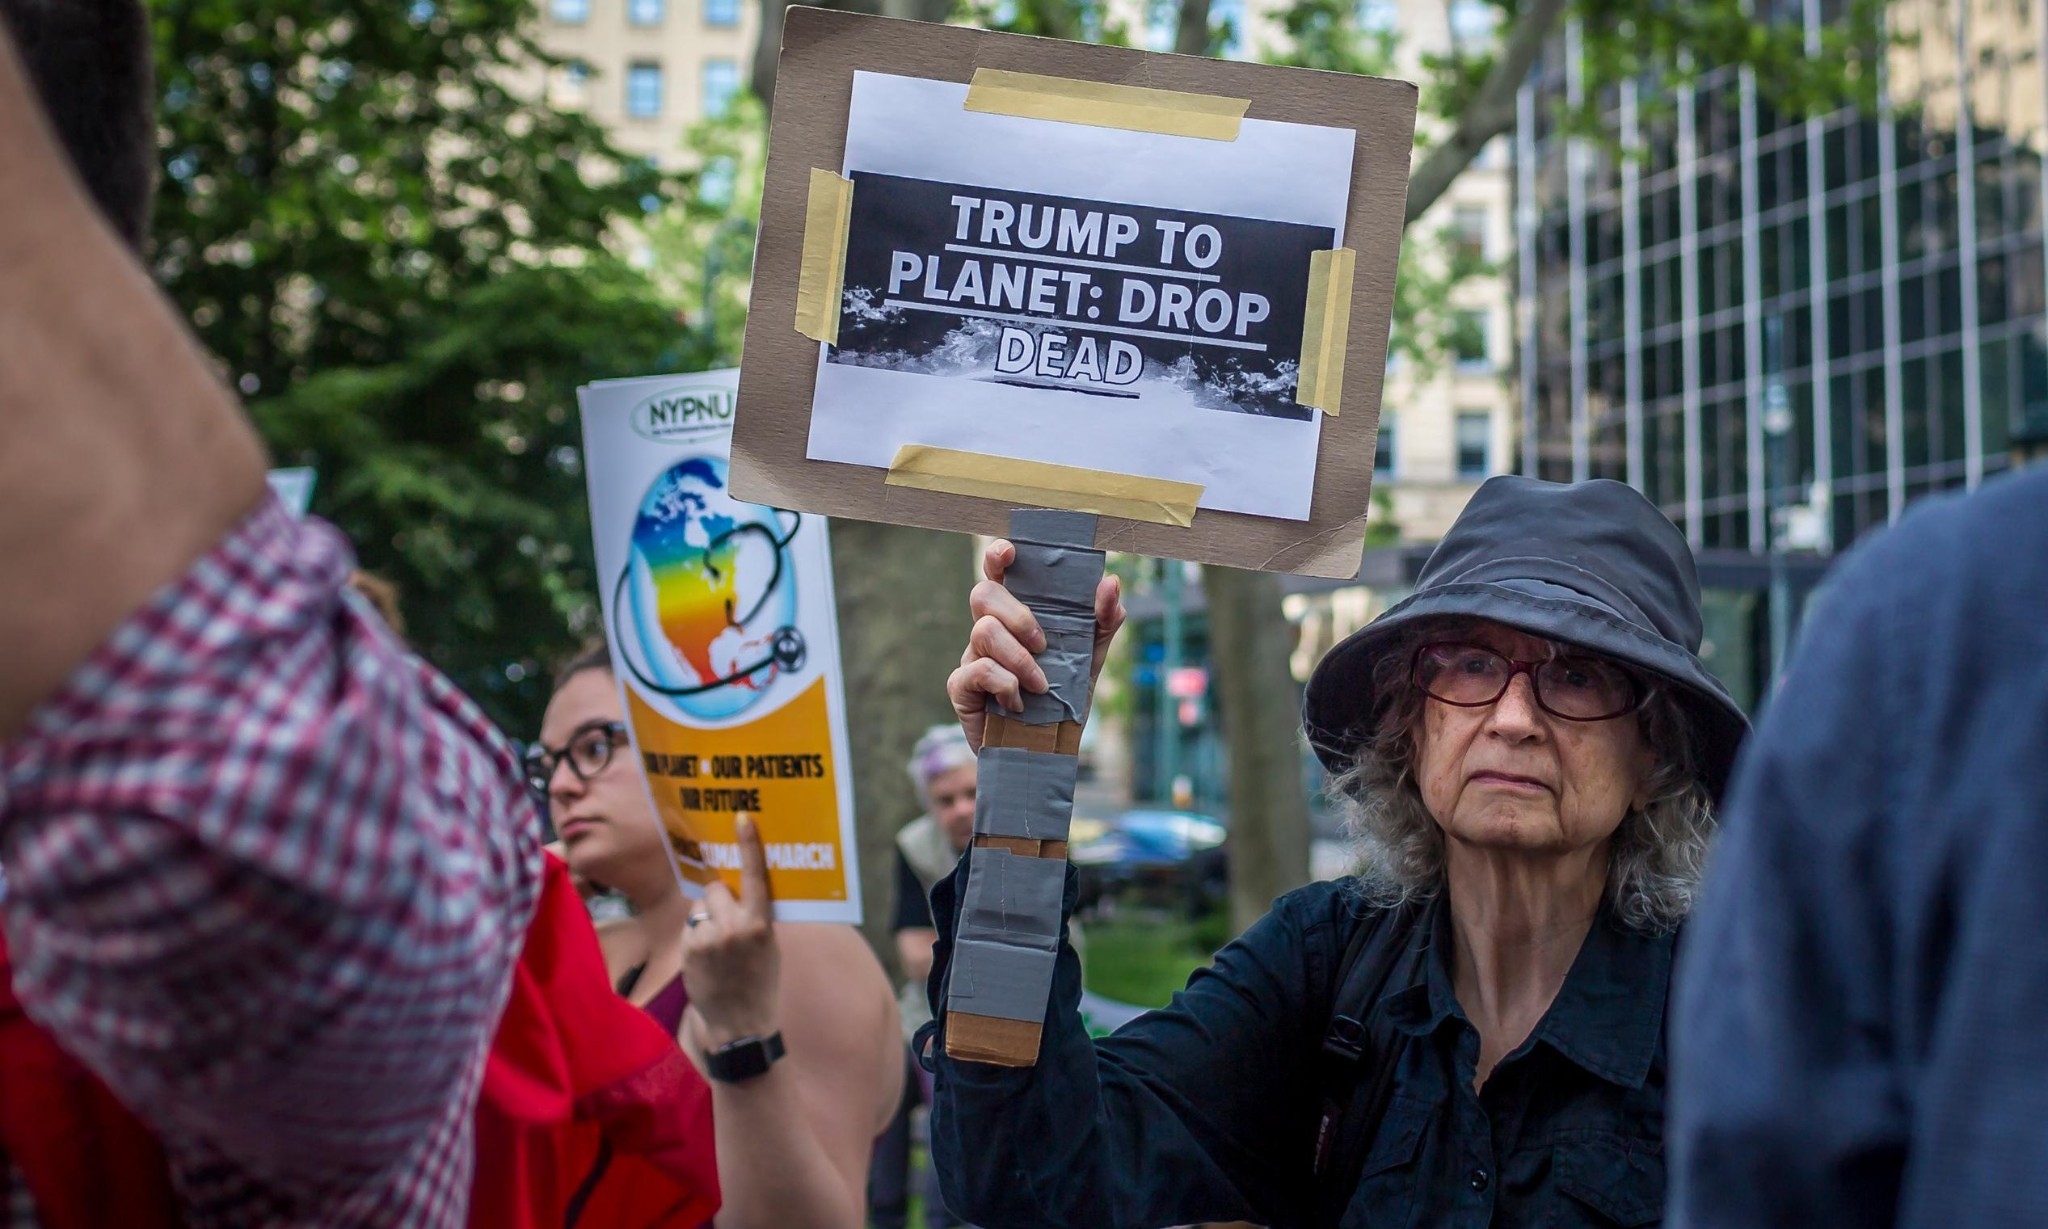 US report finds climate change 90% manmade, contradicting Trump officials